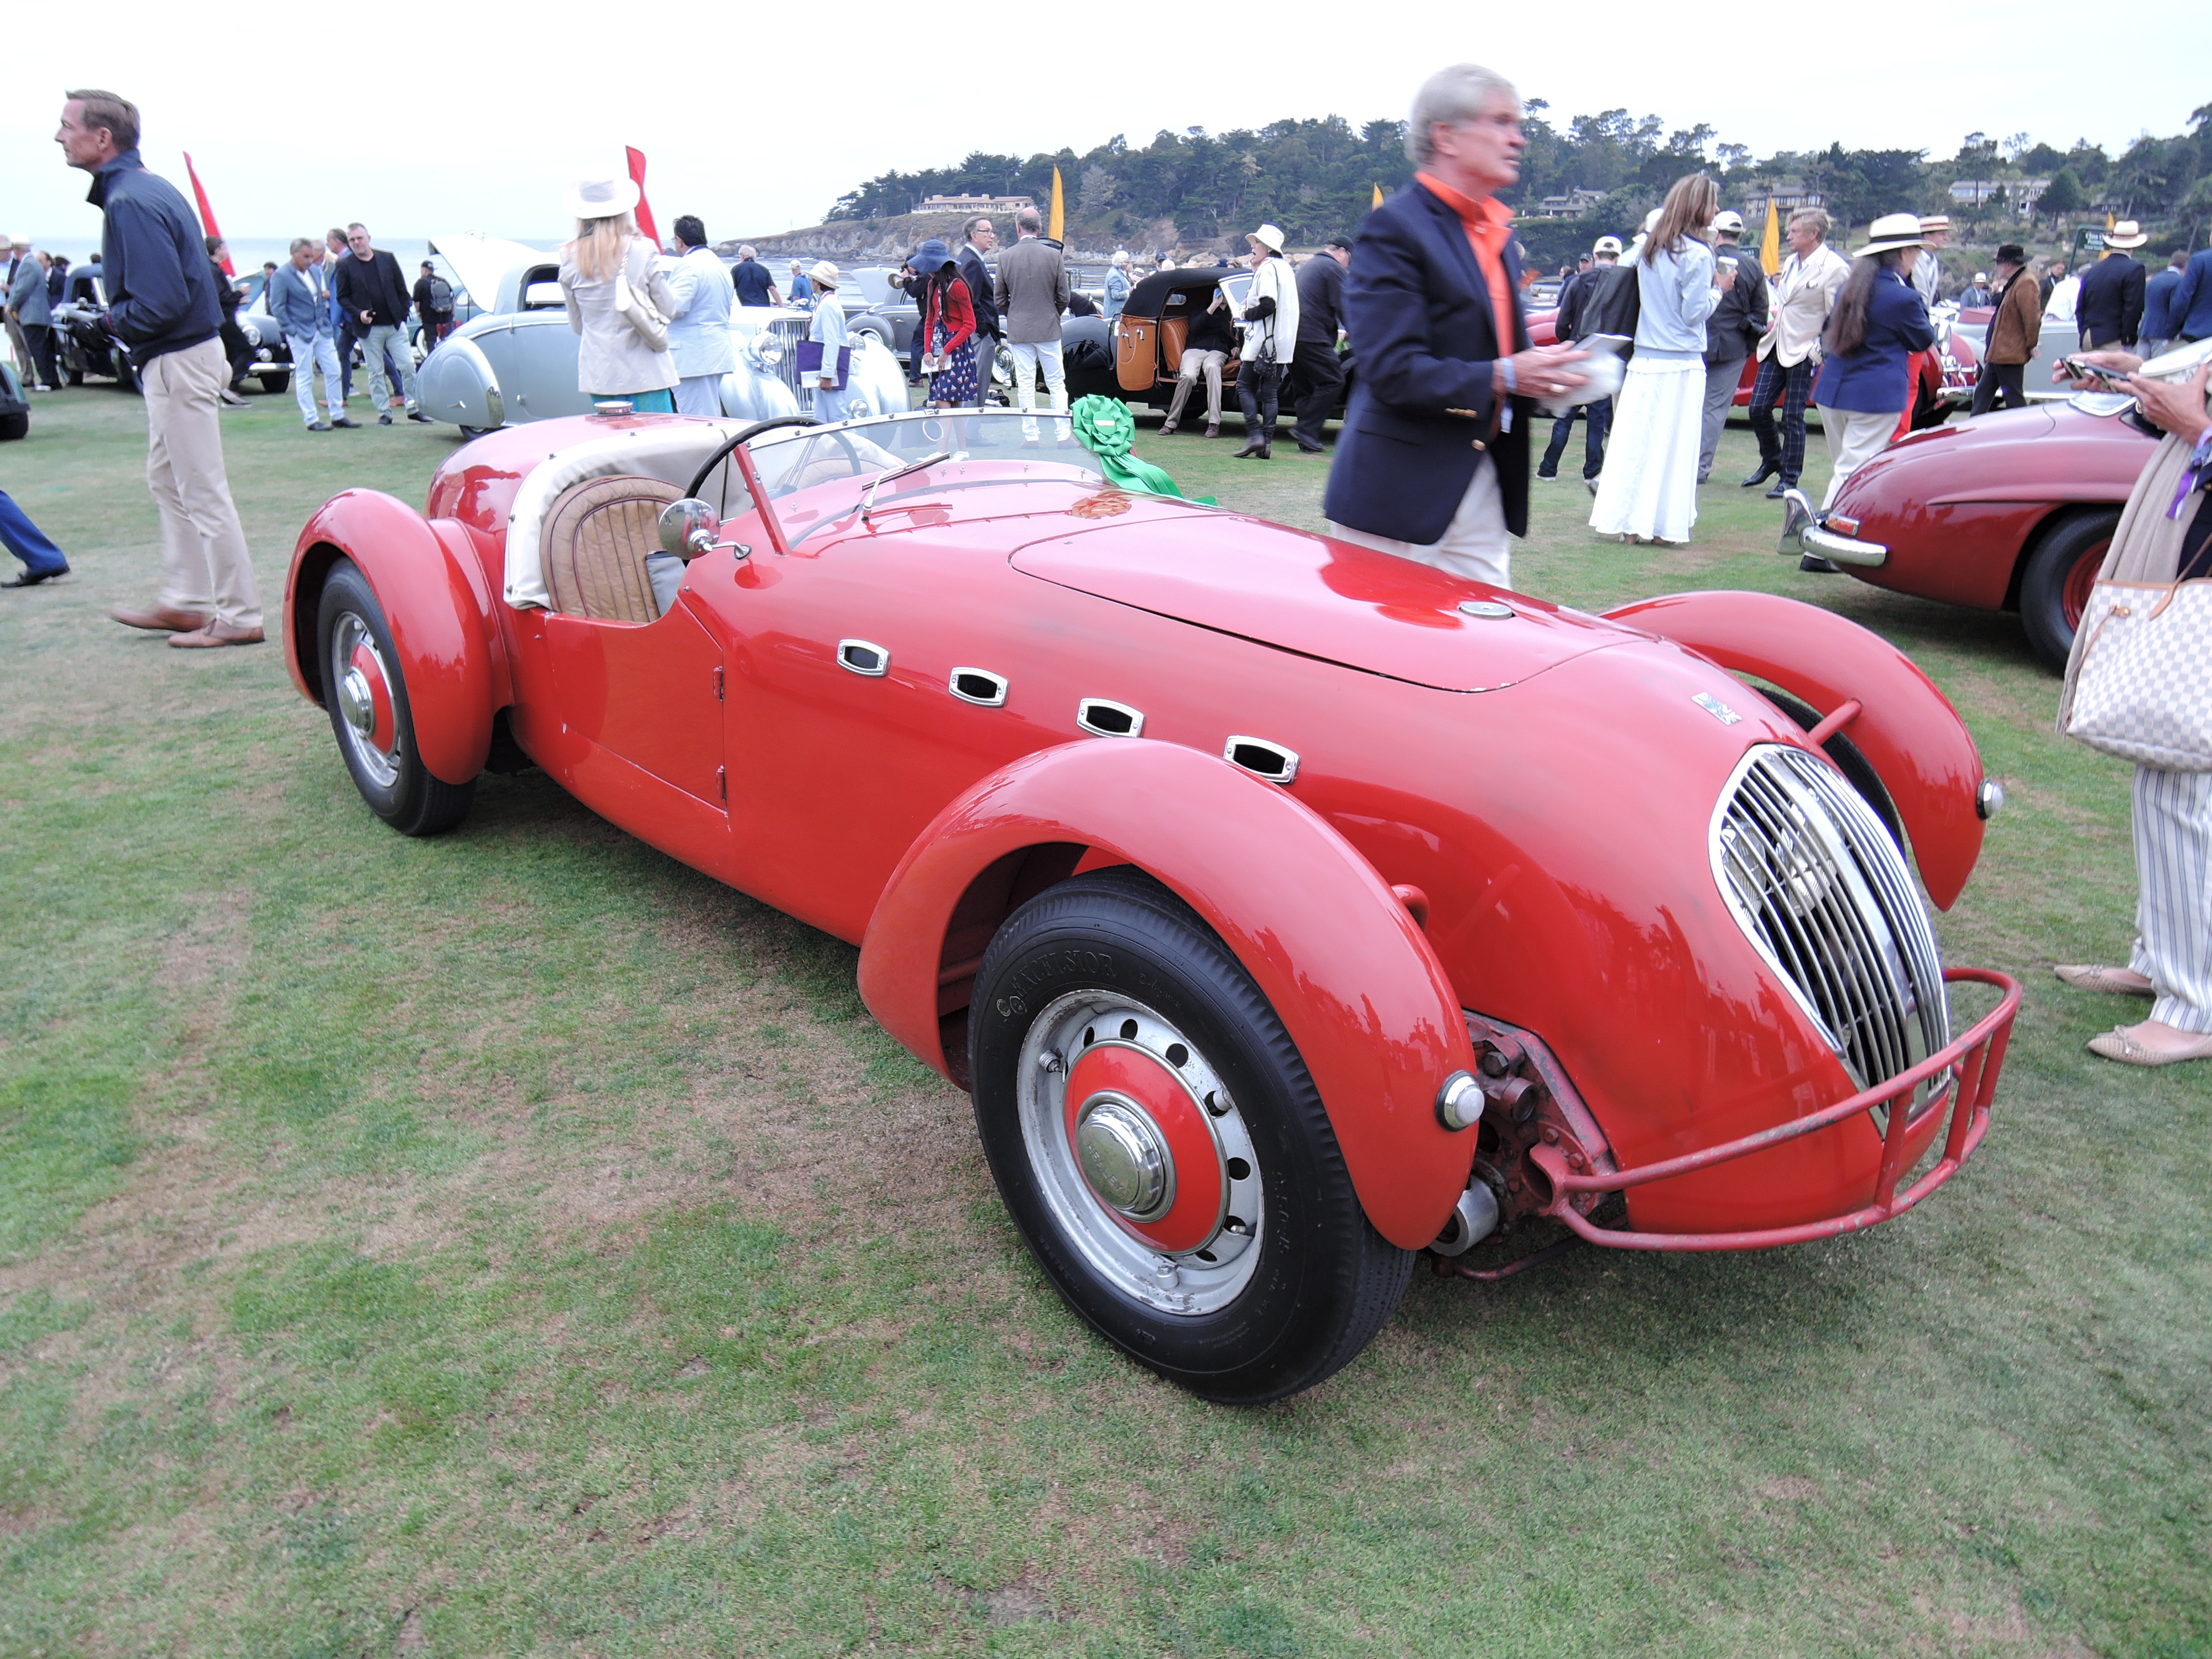 red 1949 Healey Silverstone Sports Car - Pebble Beach Concours d'Elegance 2017